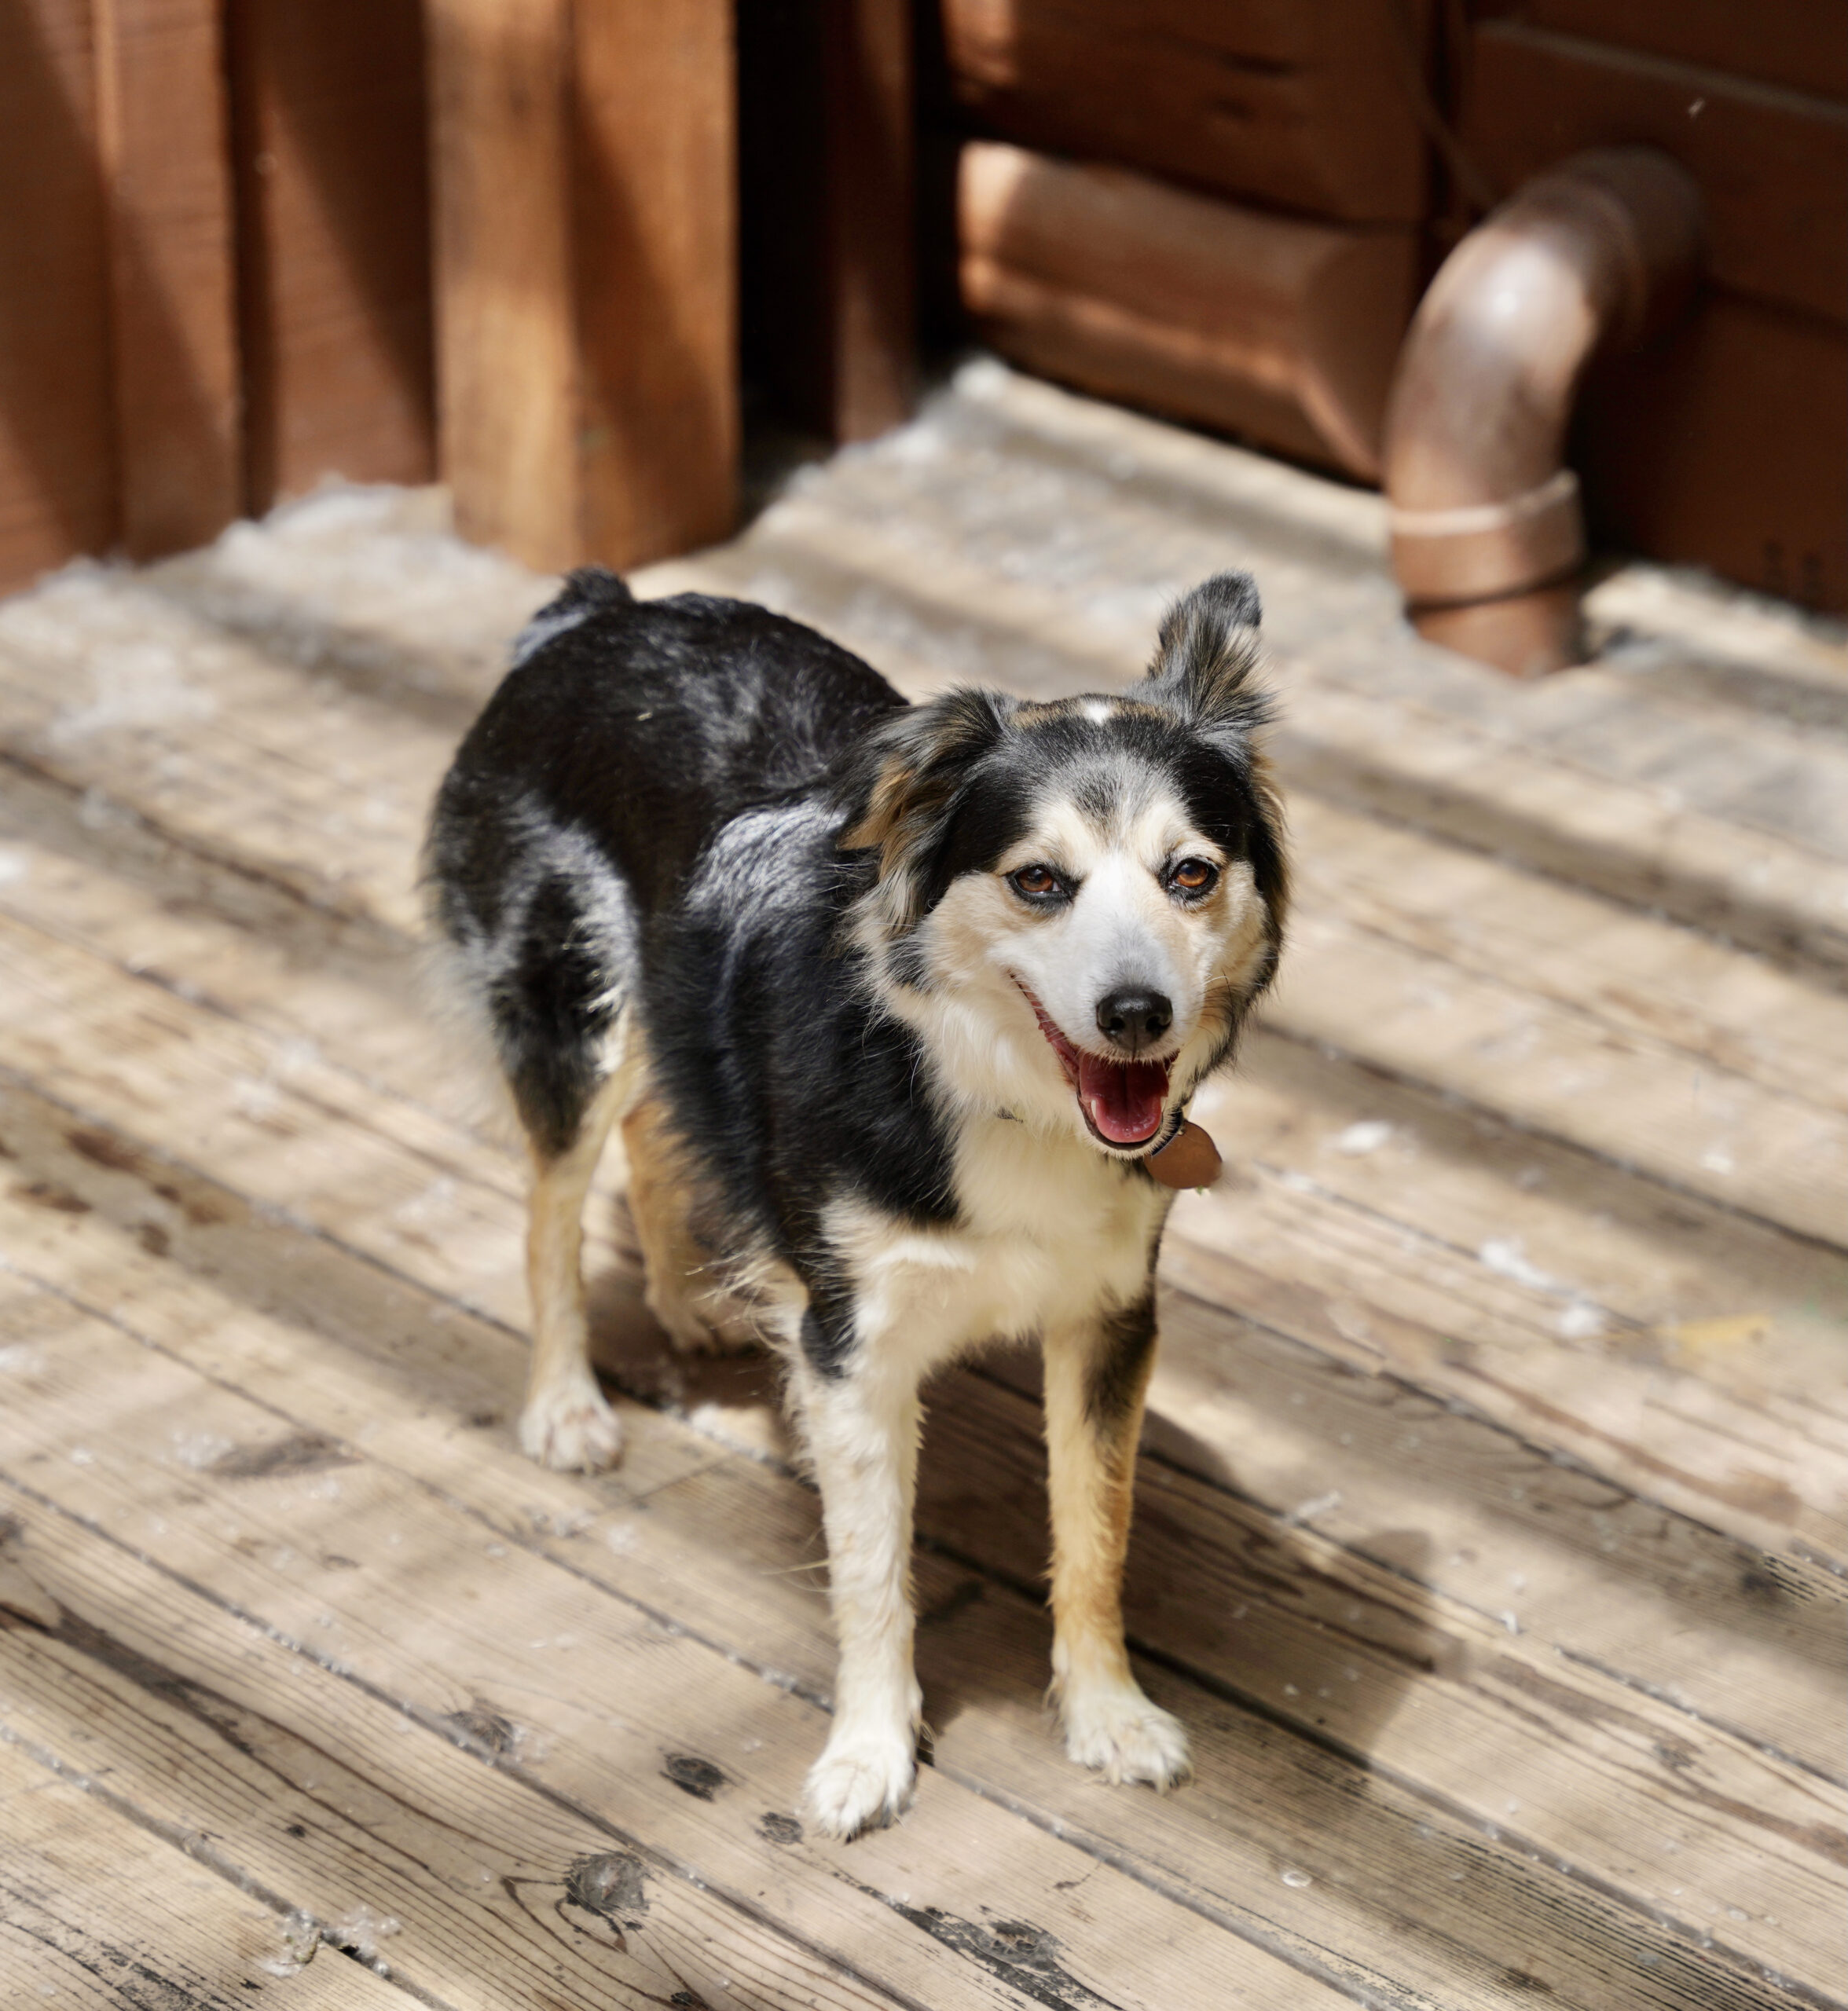 Australian Shepherd Mix Dog On A Deck Grinning With One Ear Flopped